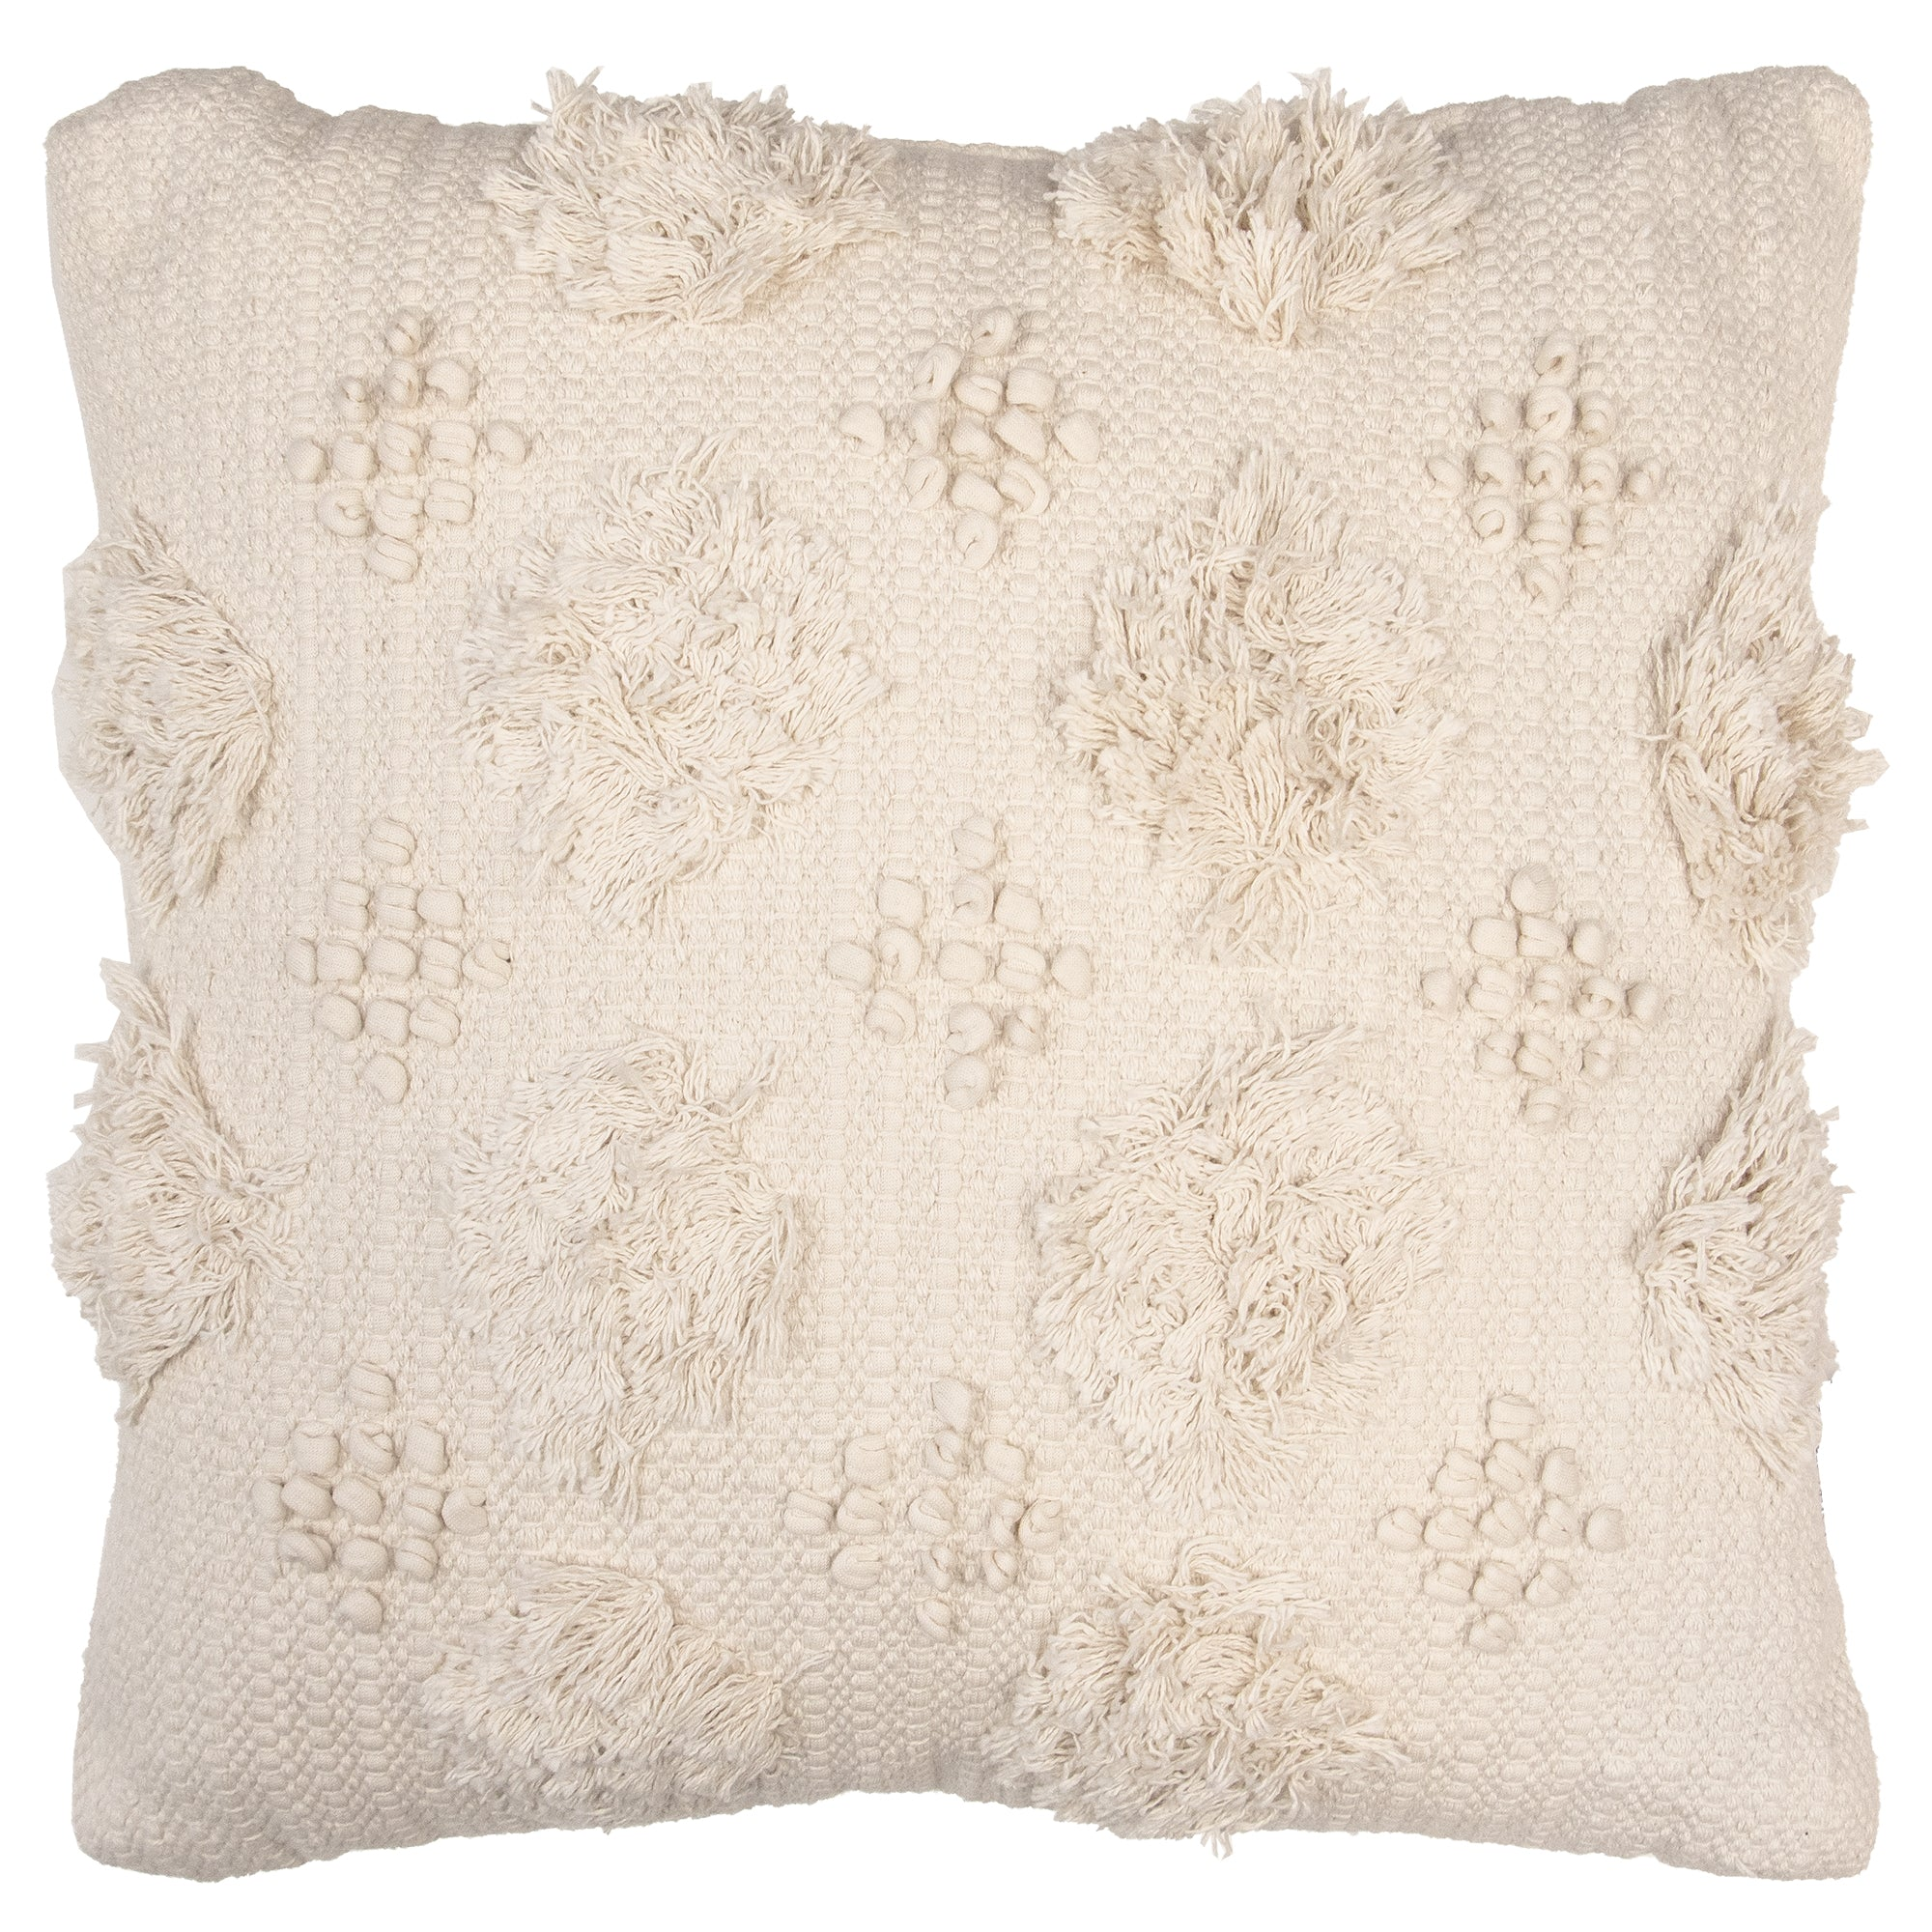 Diamond Dots Decorative Pillow